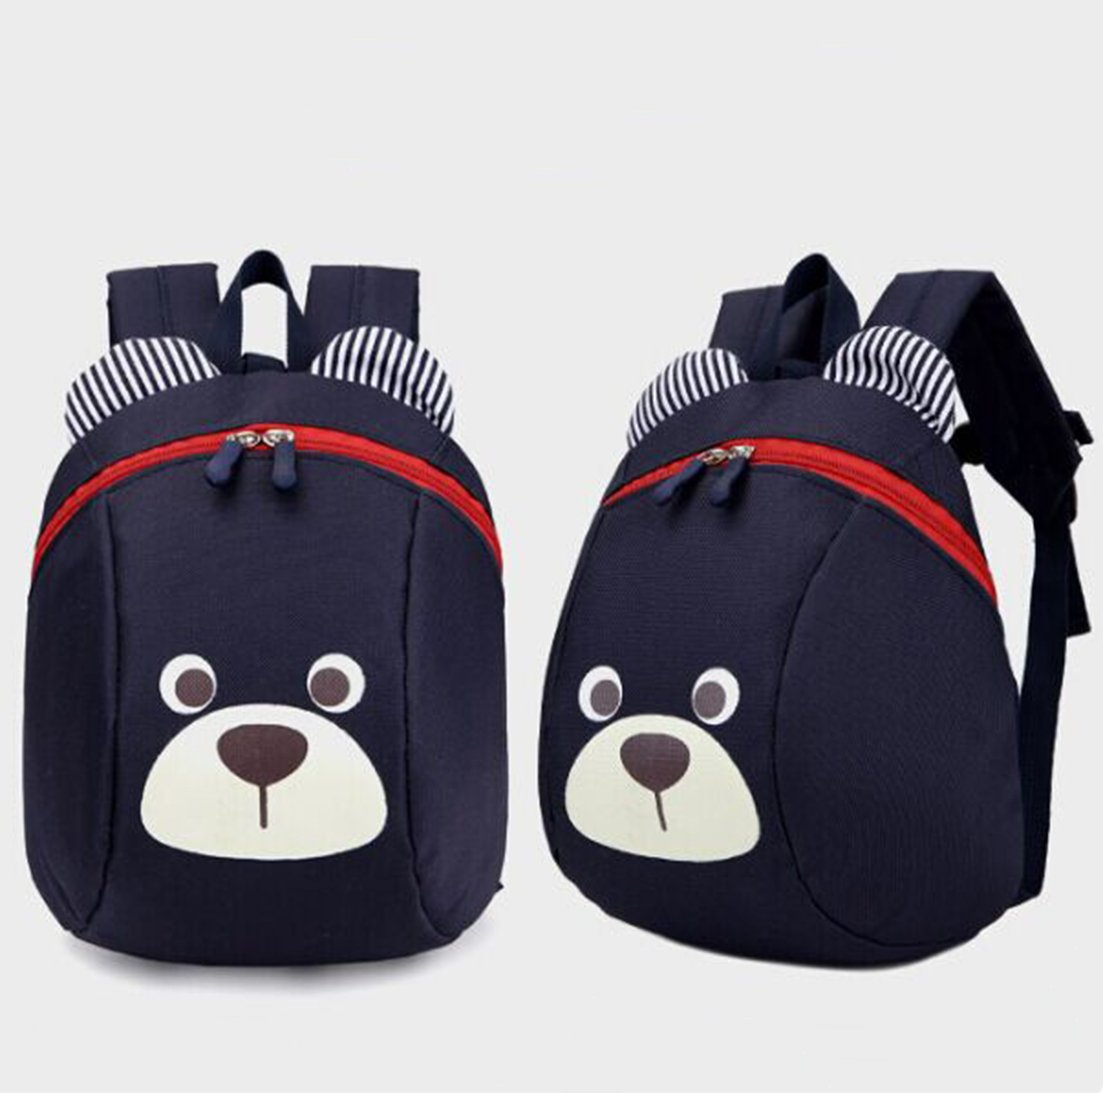 XYTMY Children Small Toddler Anti-lost Walking Safety Leash Backpack Bear for Under 5 Years Old Kids Deep Blue